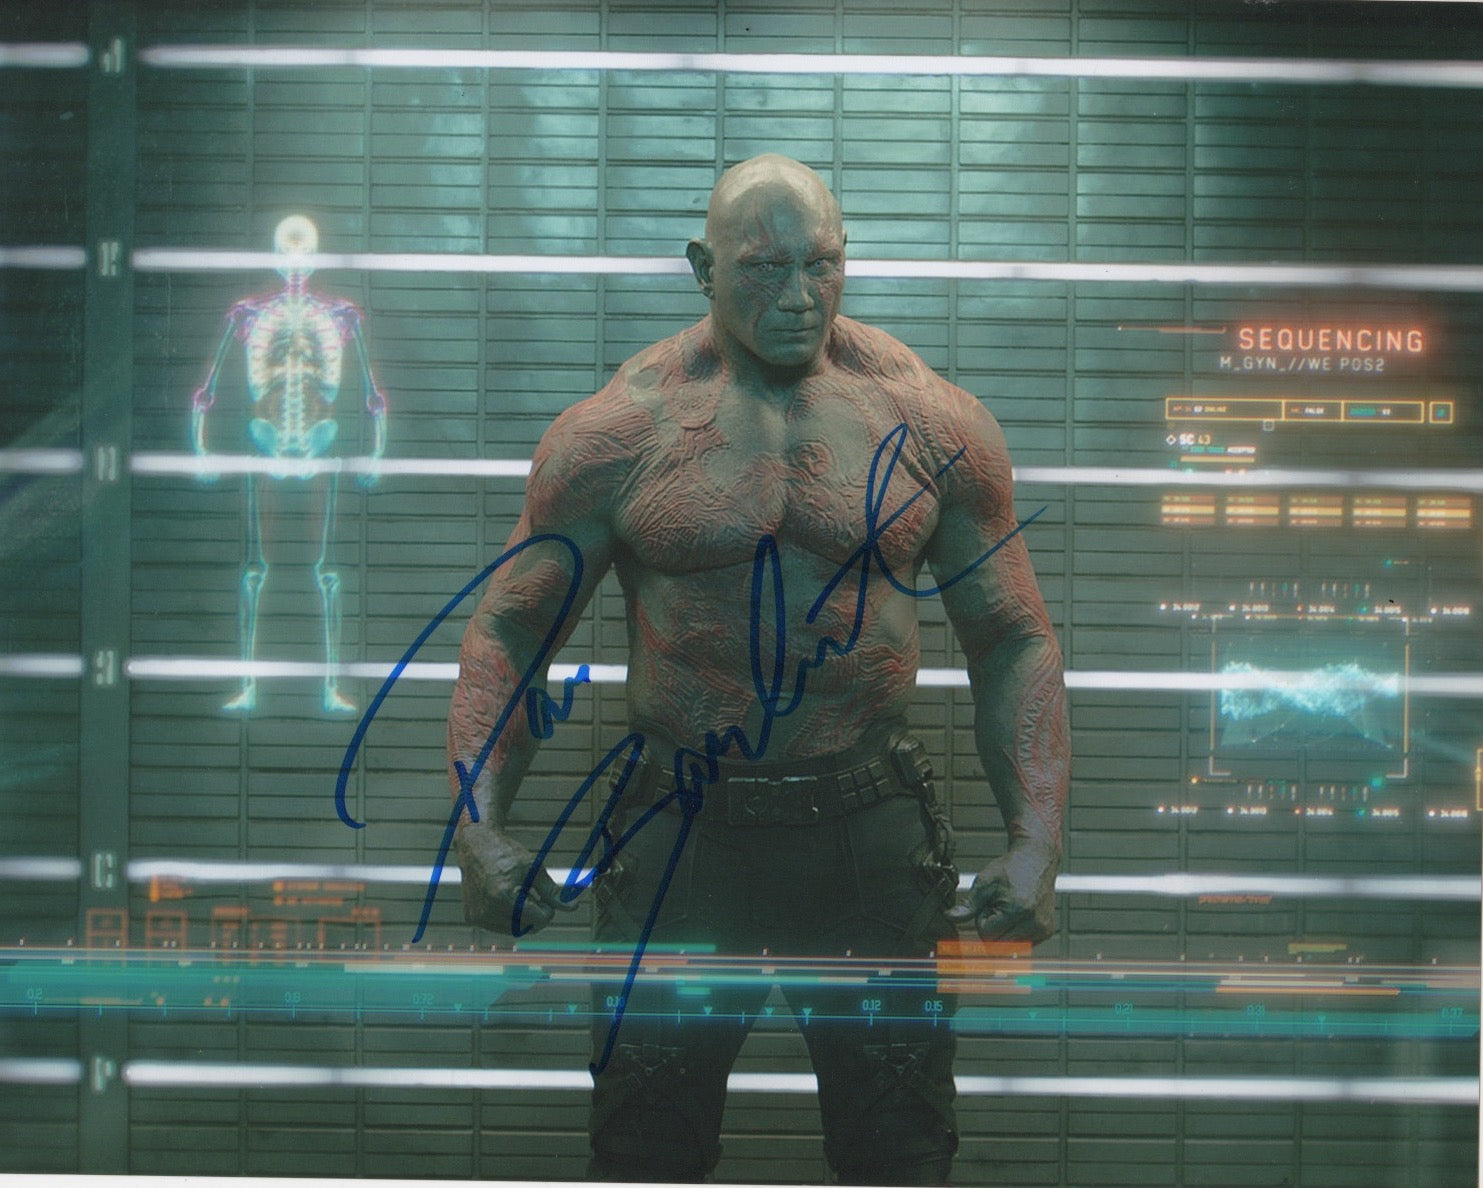 Dave Bautista Guardians of the Galaxy Signed Autograph 8x10 Photo